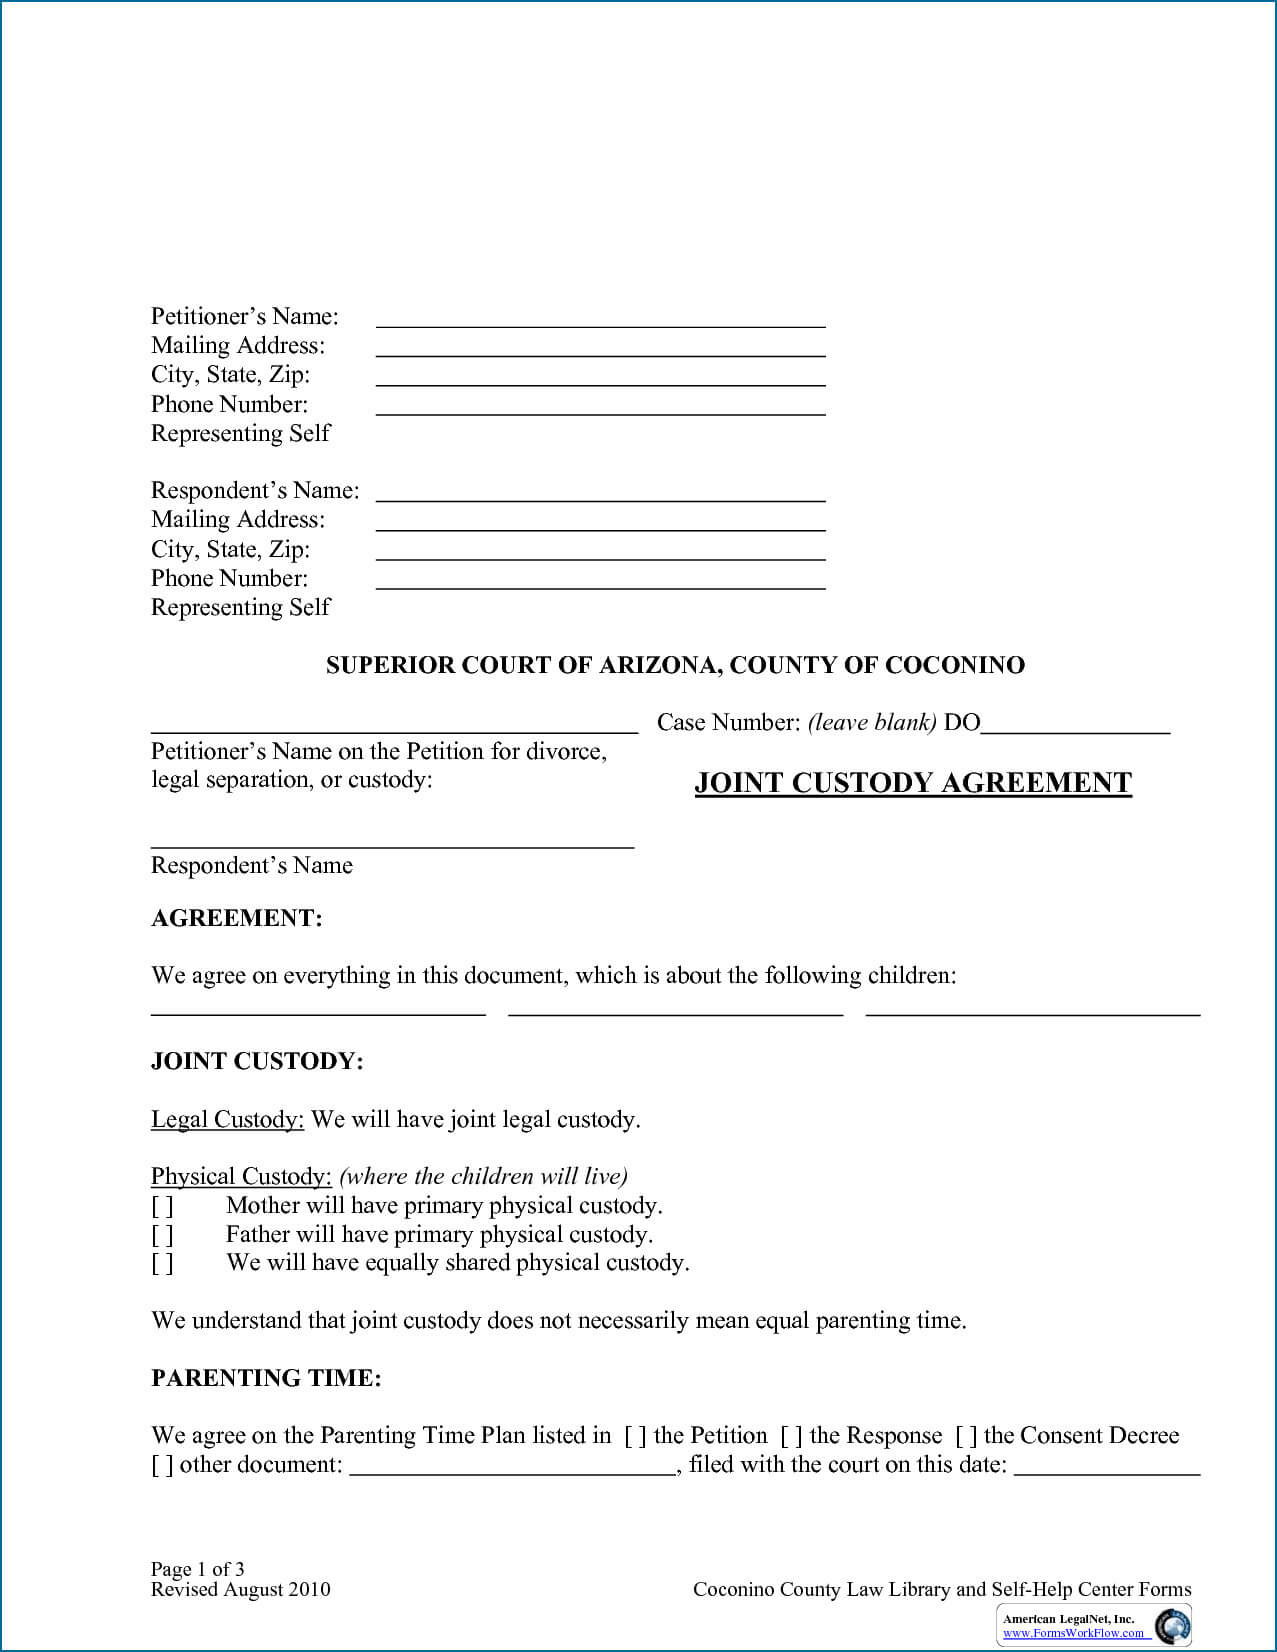 002 Child Custody Agreement Form Ontario Template Doliquid Intended For Child Custody Agreement Template